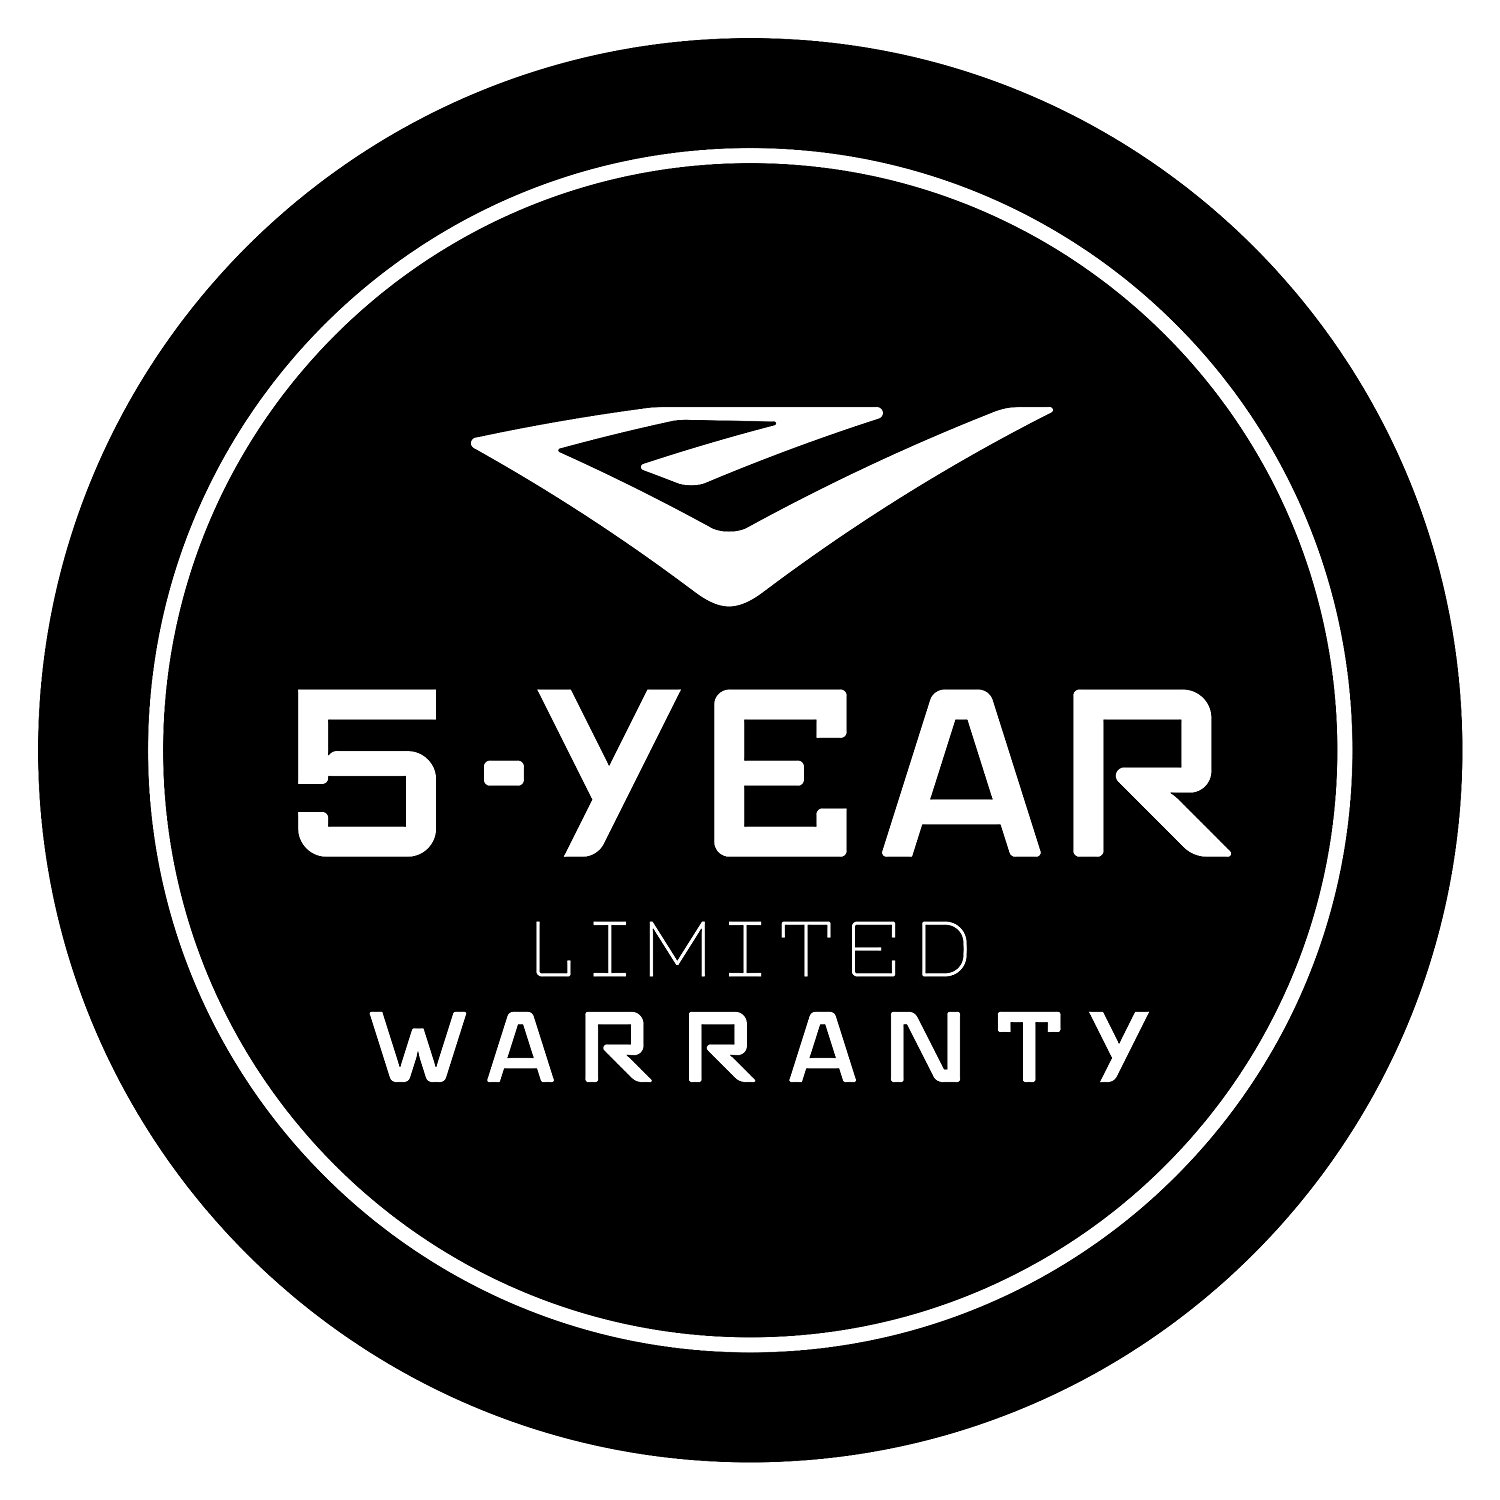 VERSA carries a 5-year limited warranty vs. only 2 or 3 years for other tillers